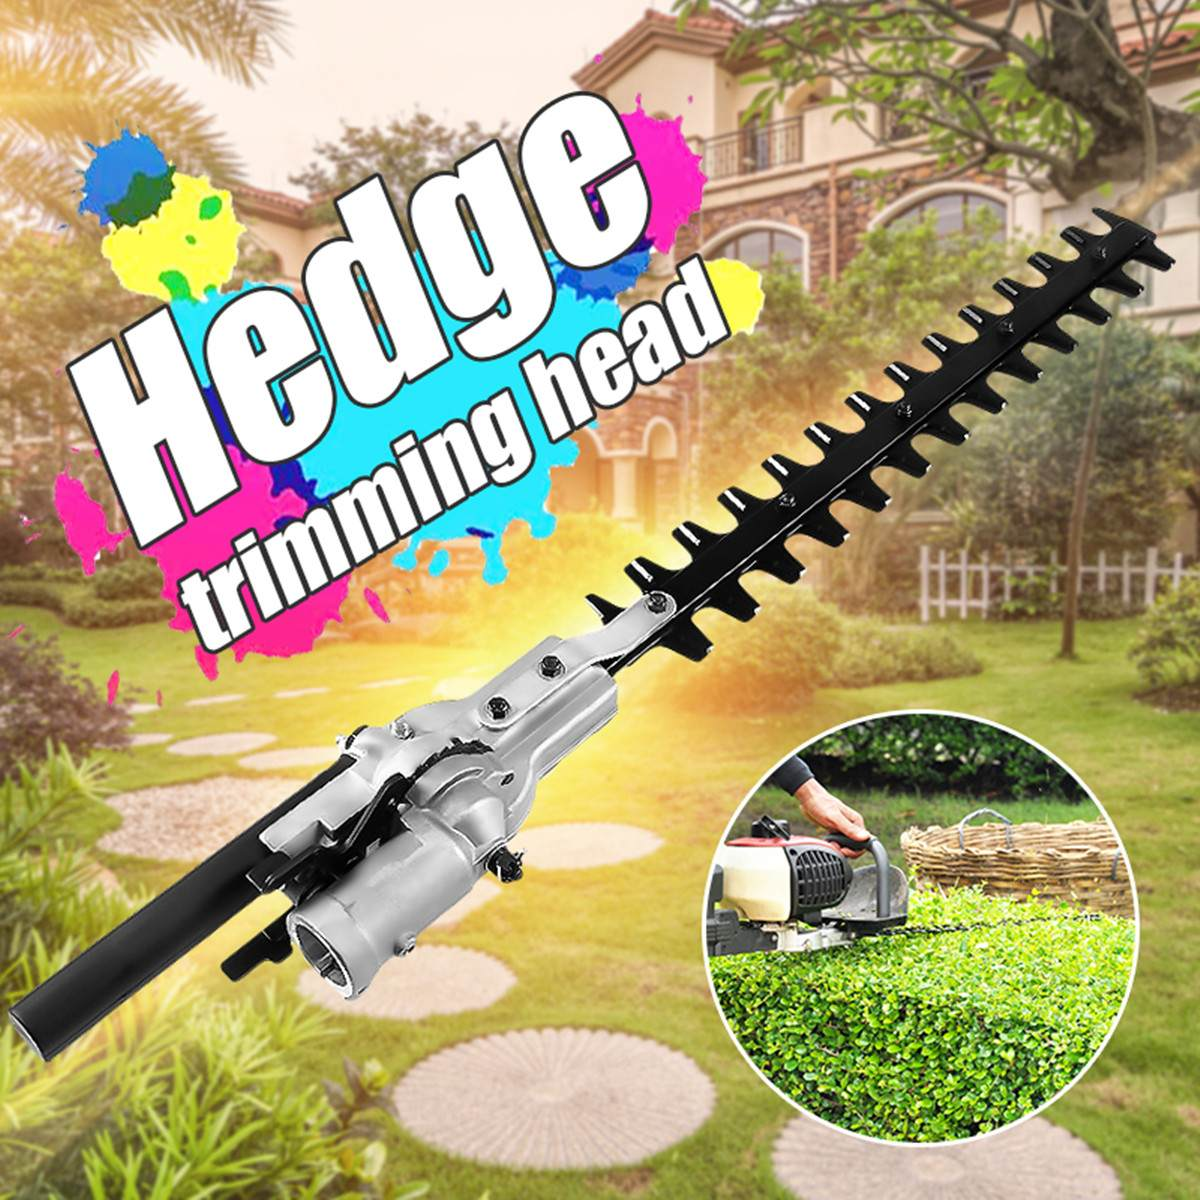 26mm 9 Teeth Pole Hedge Trimmer Bush Cutter Head Grass Trimmers For Garden Multi Tool Pole Chainsaw Garden Power Tools